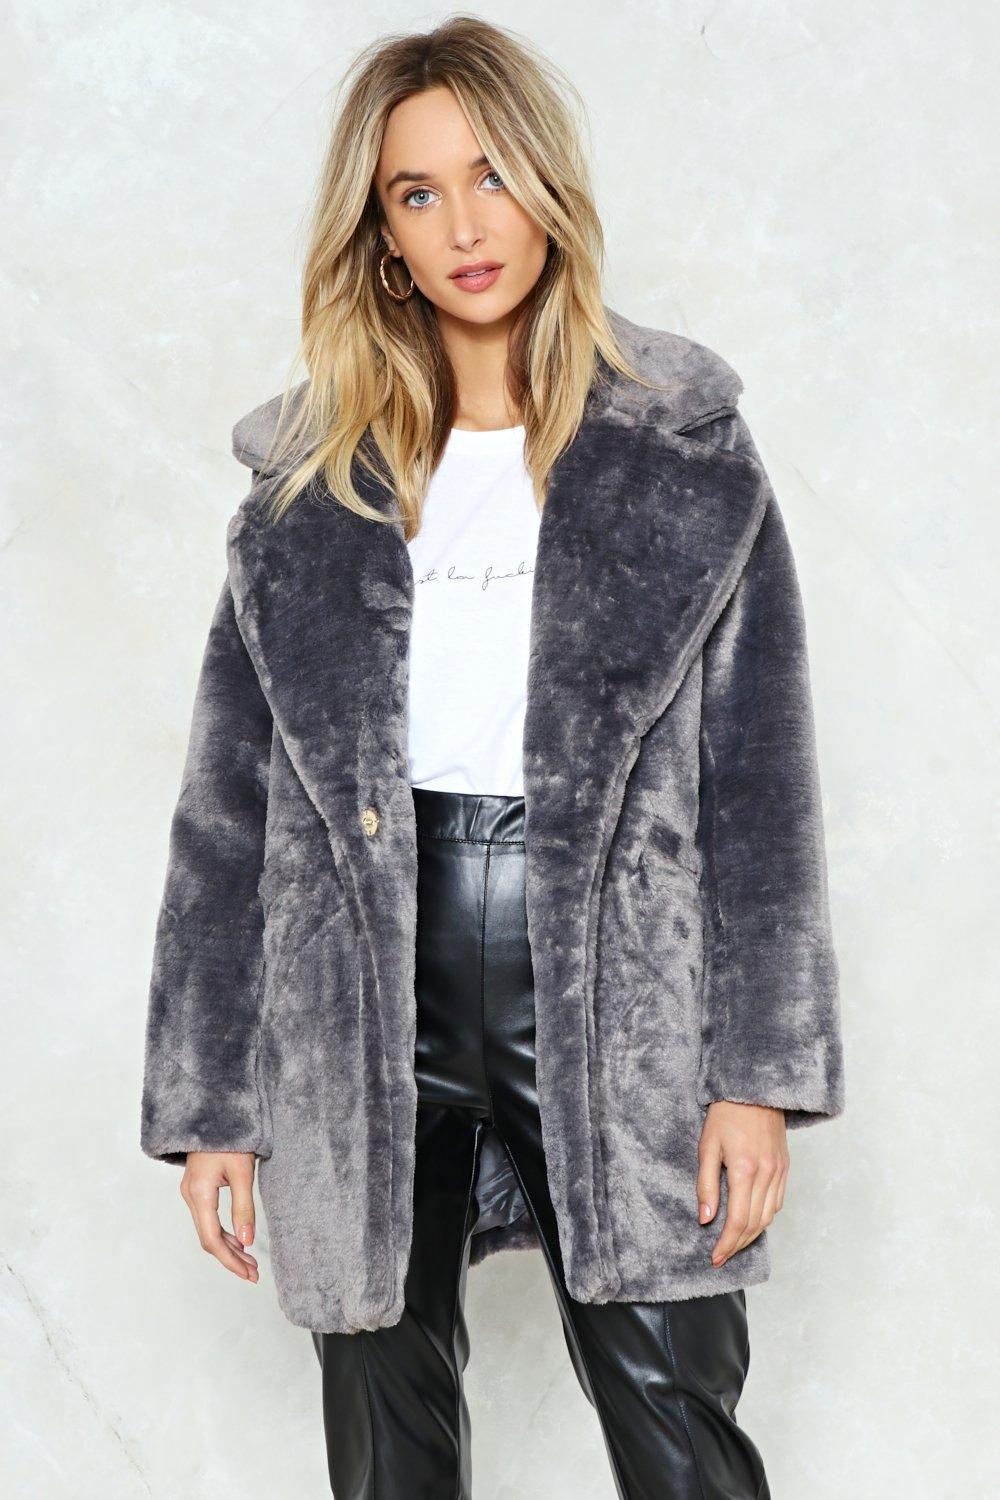 a248b34c5847 All Fur the Glory Faux Fur Coat | Shop Clothes at Nasty Gal!